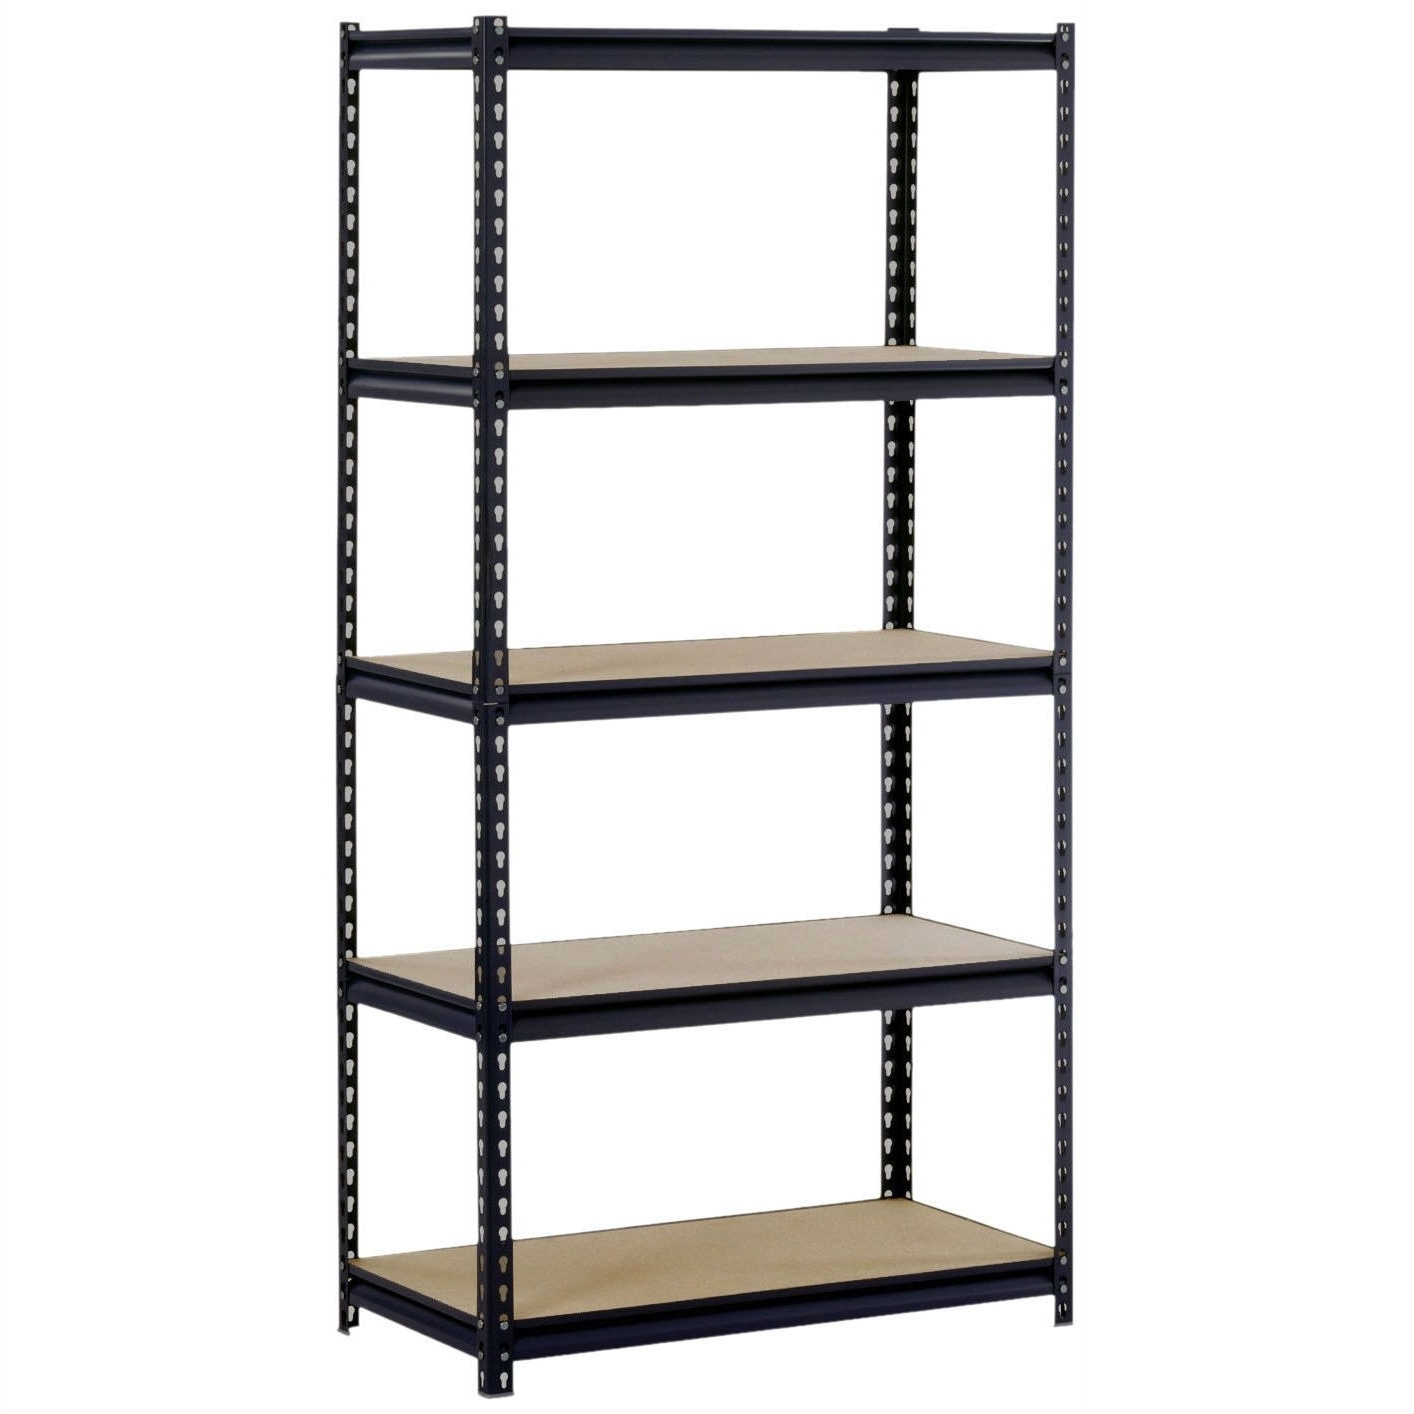 Free Standing Shelving Units Wood Intended For Popular Shelves (View 4 of 15)